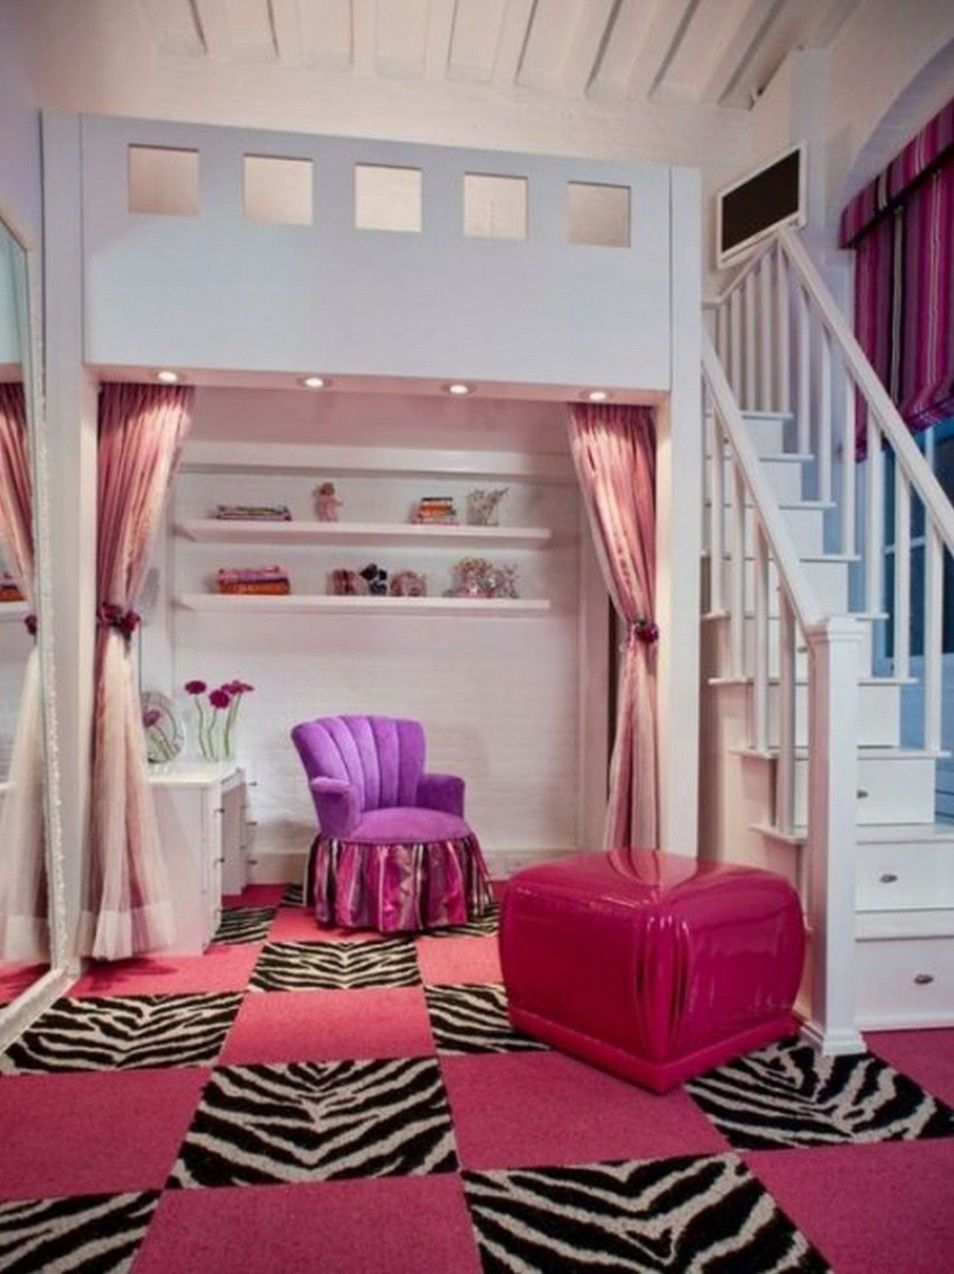 Creative bedroom wall decor ideas - Pictures Of Excellent Magnificent Color In Cool Bedroom Wall Ideas At Beauty Home Decoration Furniture Teens